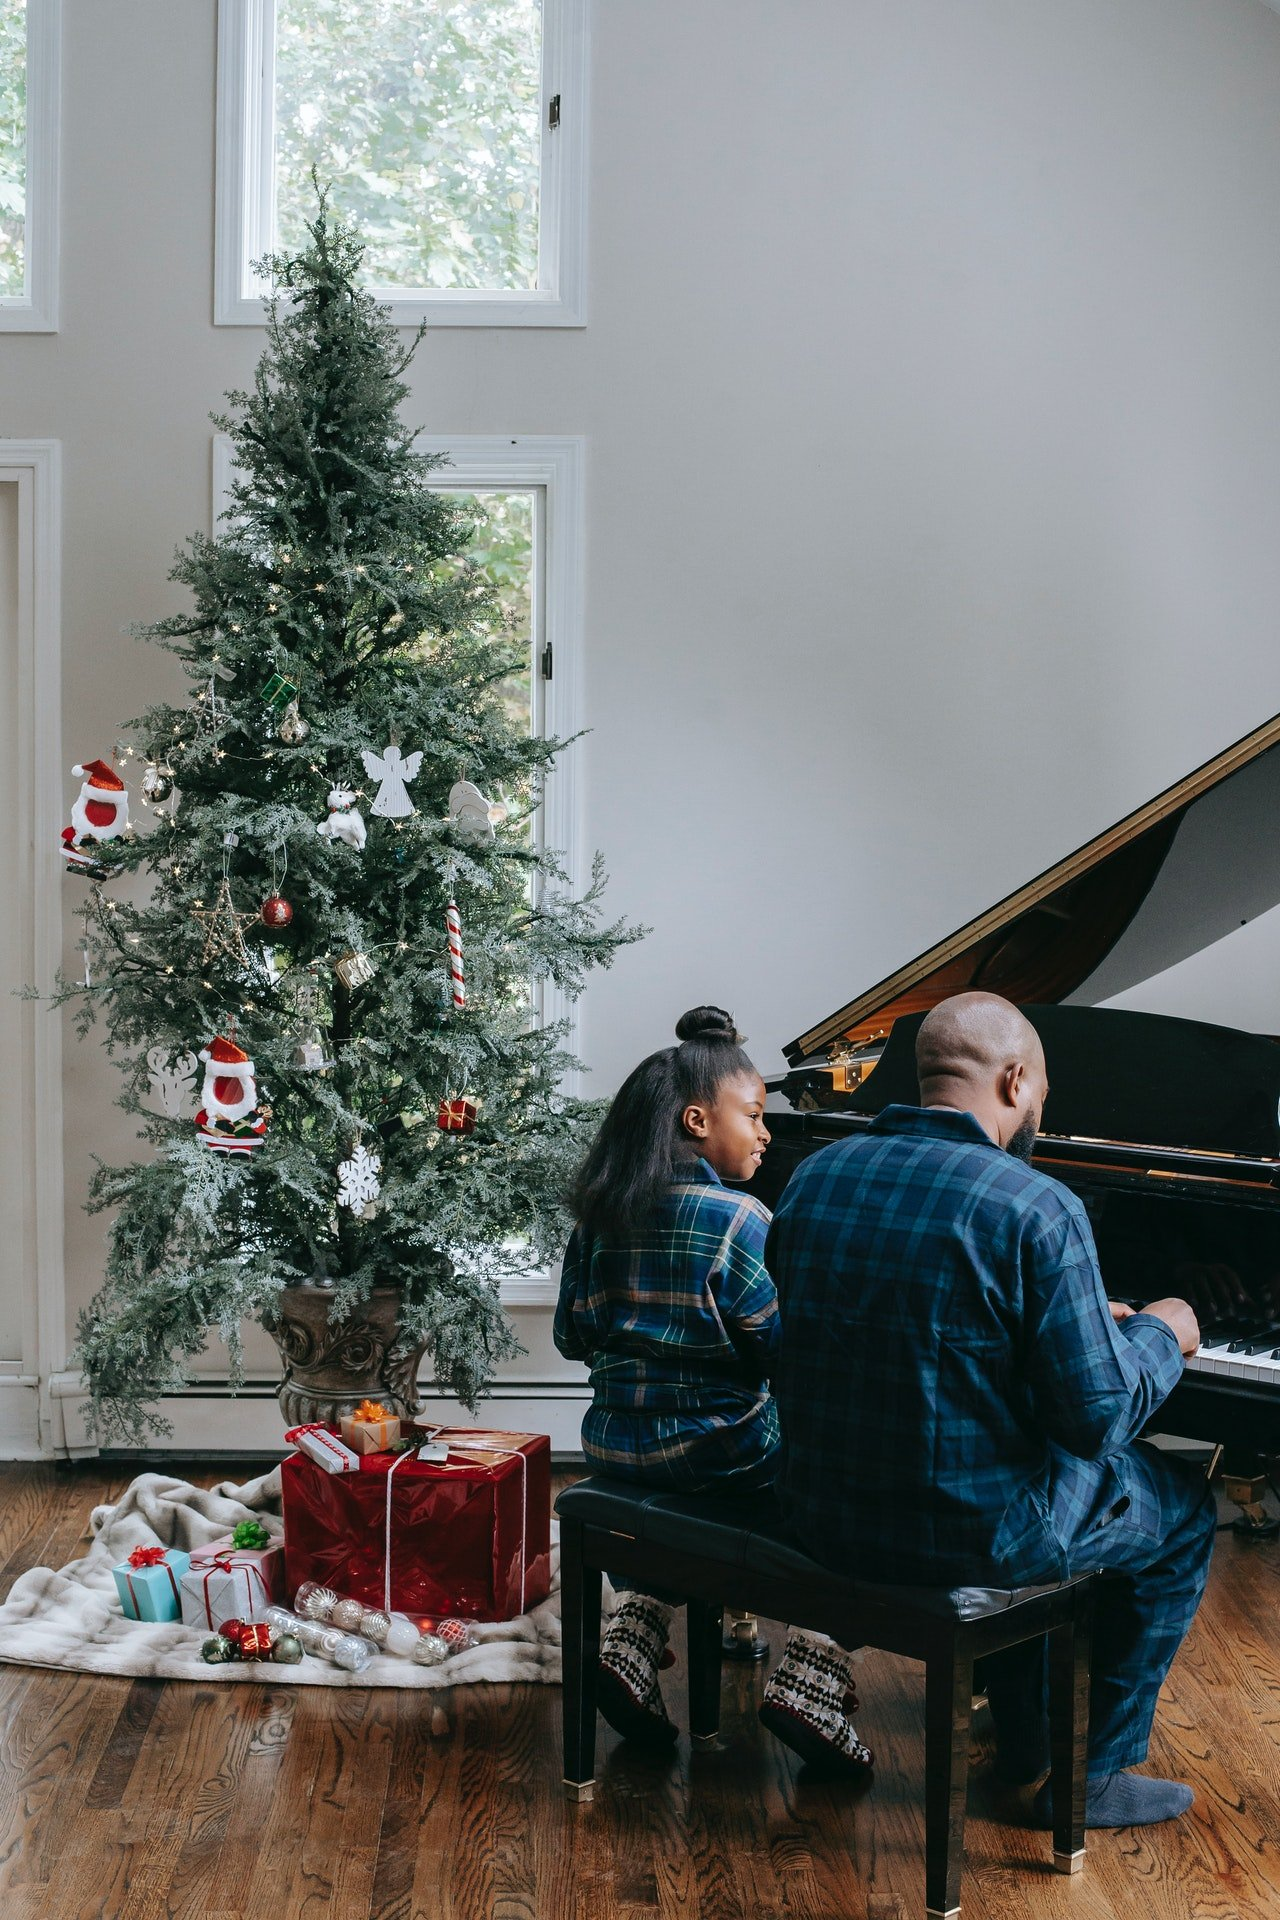 Photo of a man and woman playing a piano | Photo: Pexels